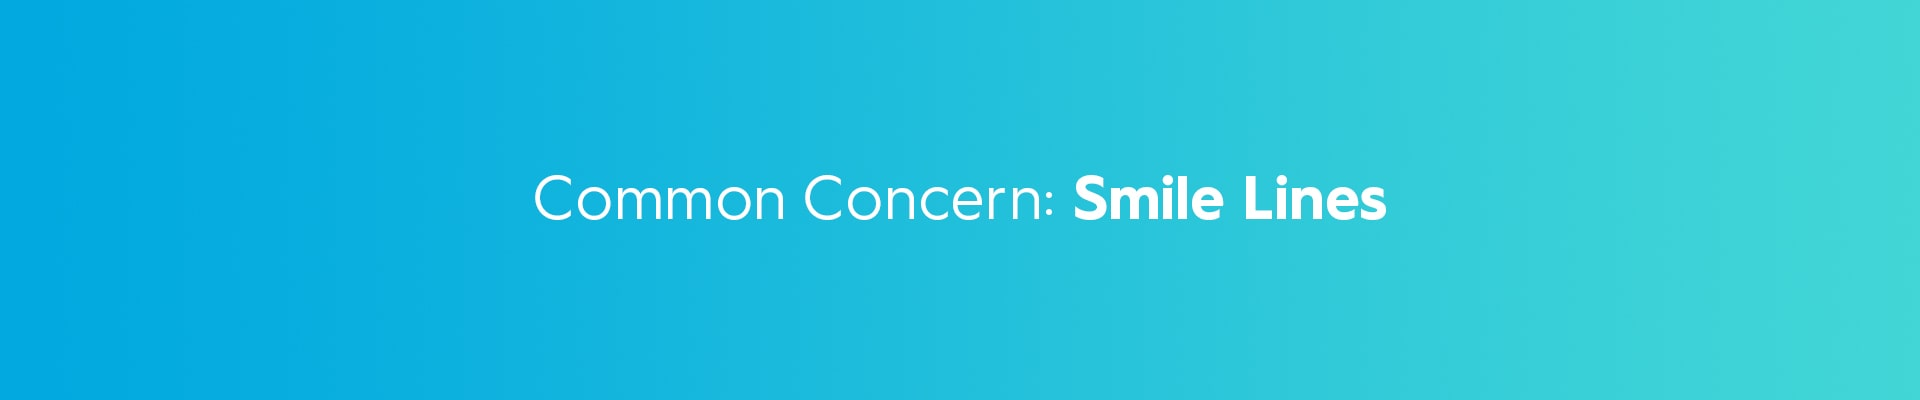 Common-Concerns Smile Lines